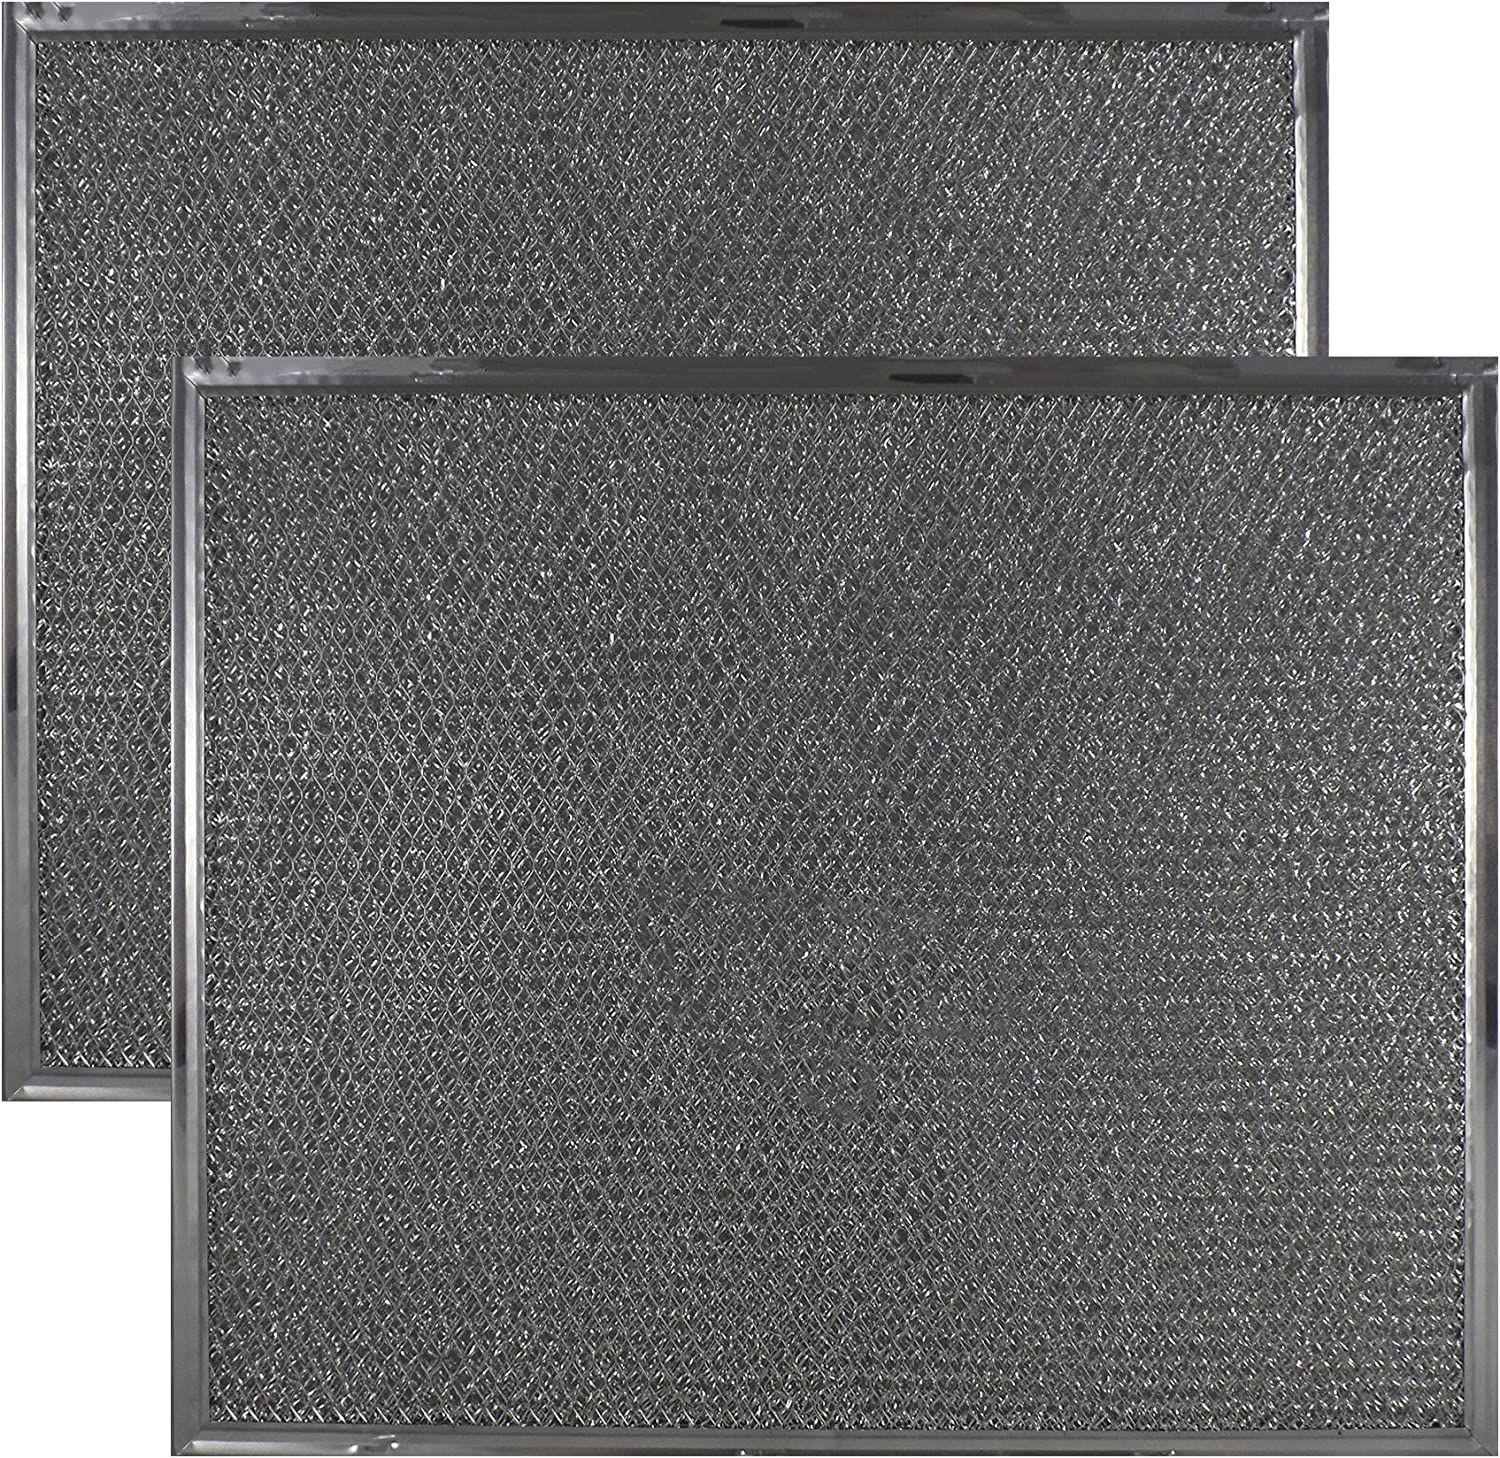 Air Filter Factory 2 Pack Compatible Replacement for Maytag & Jenn Air 707929, 708929 Range Hood Aluminum Grease Filter